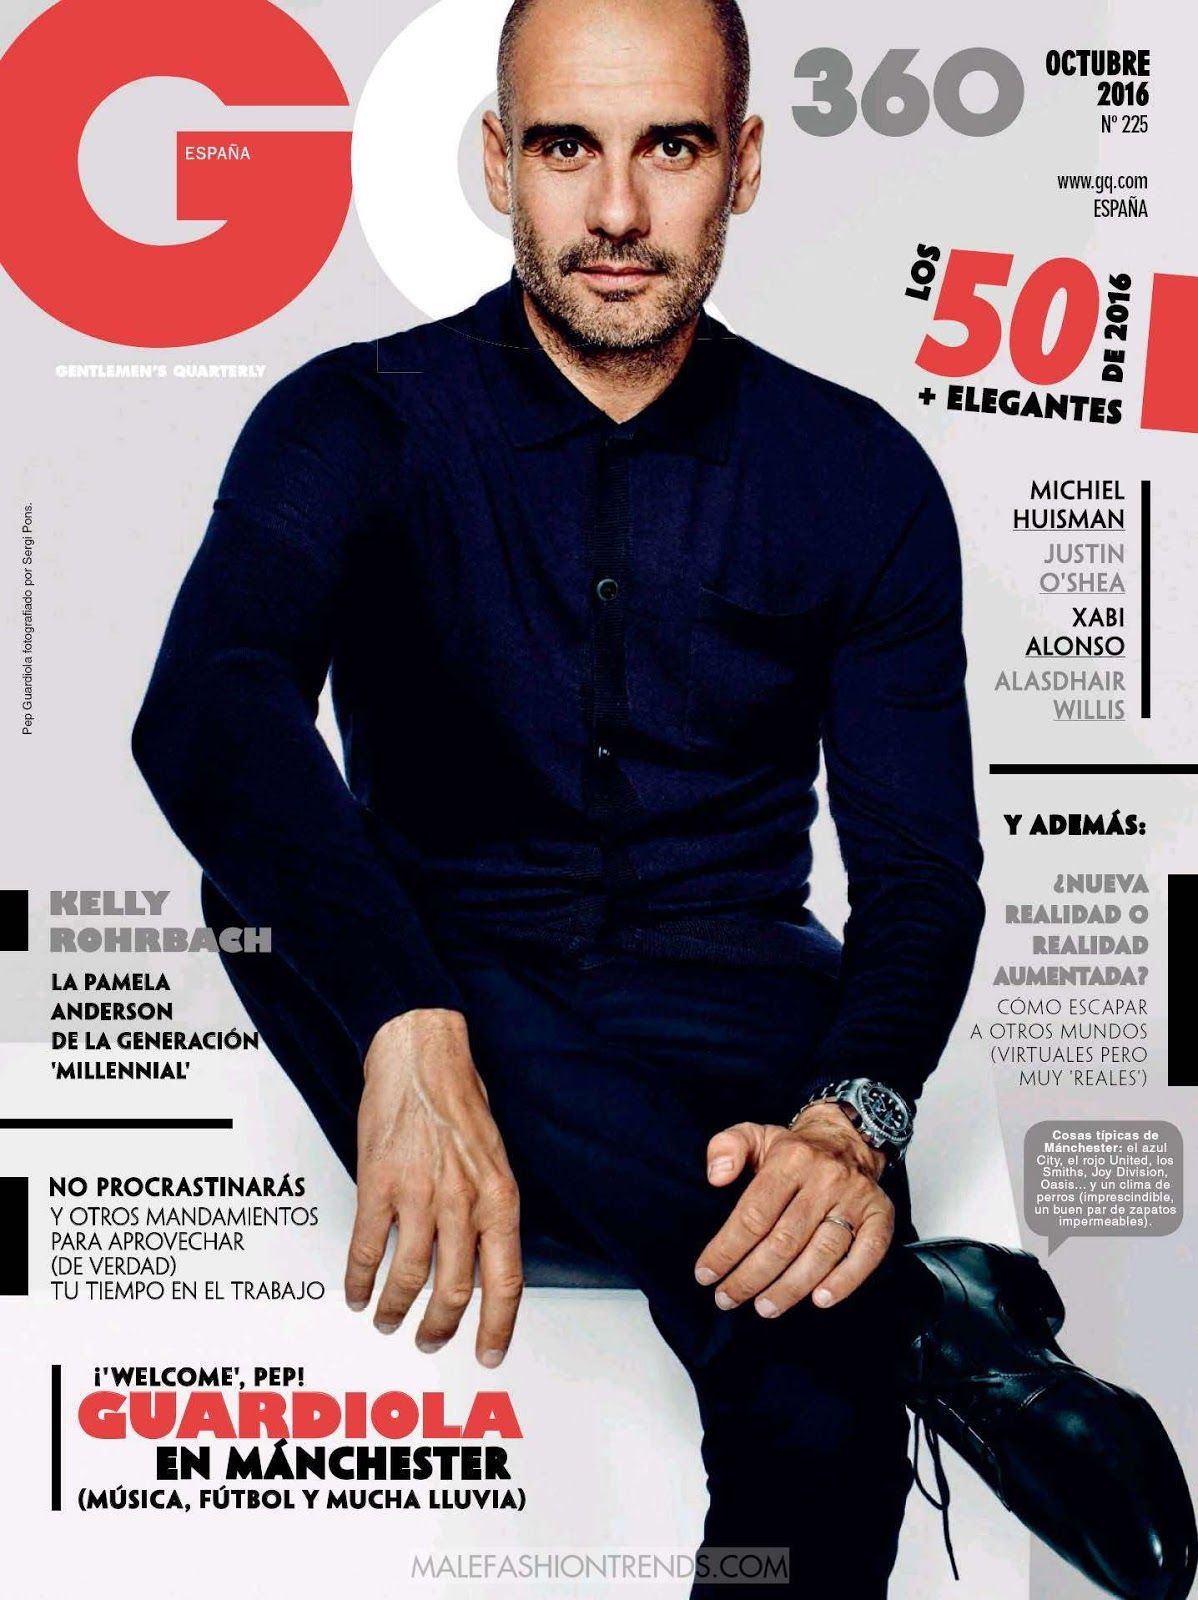 Gq Magazine The Secrets Of R Kelly: Pep Guardiola Por Sergi Pons Para GQ España